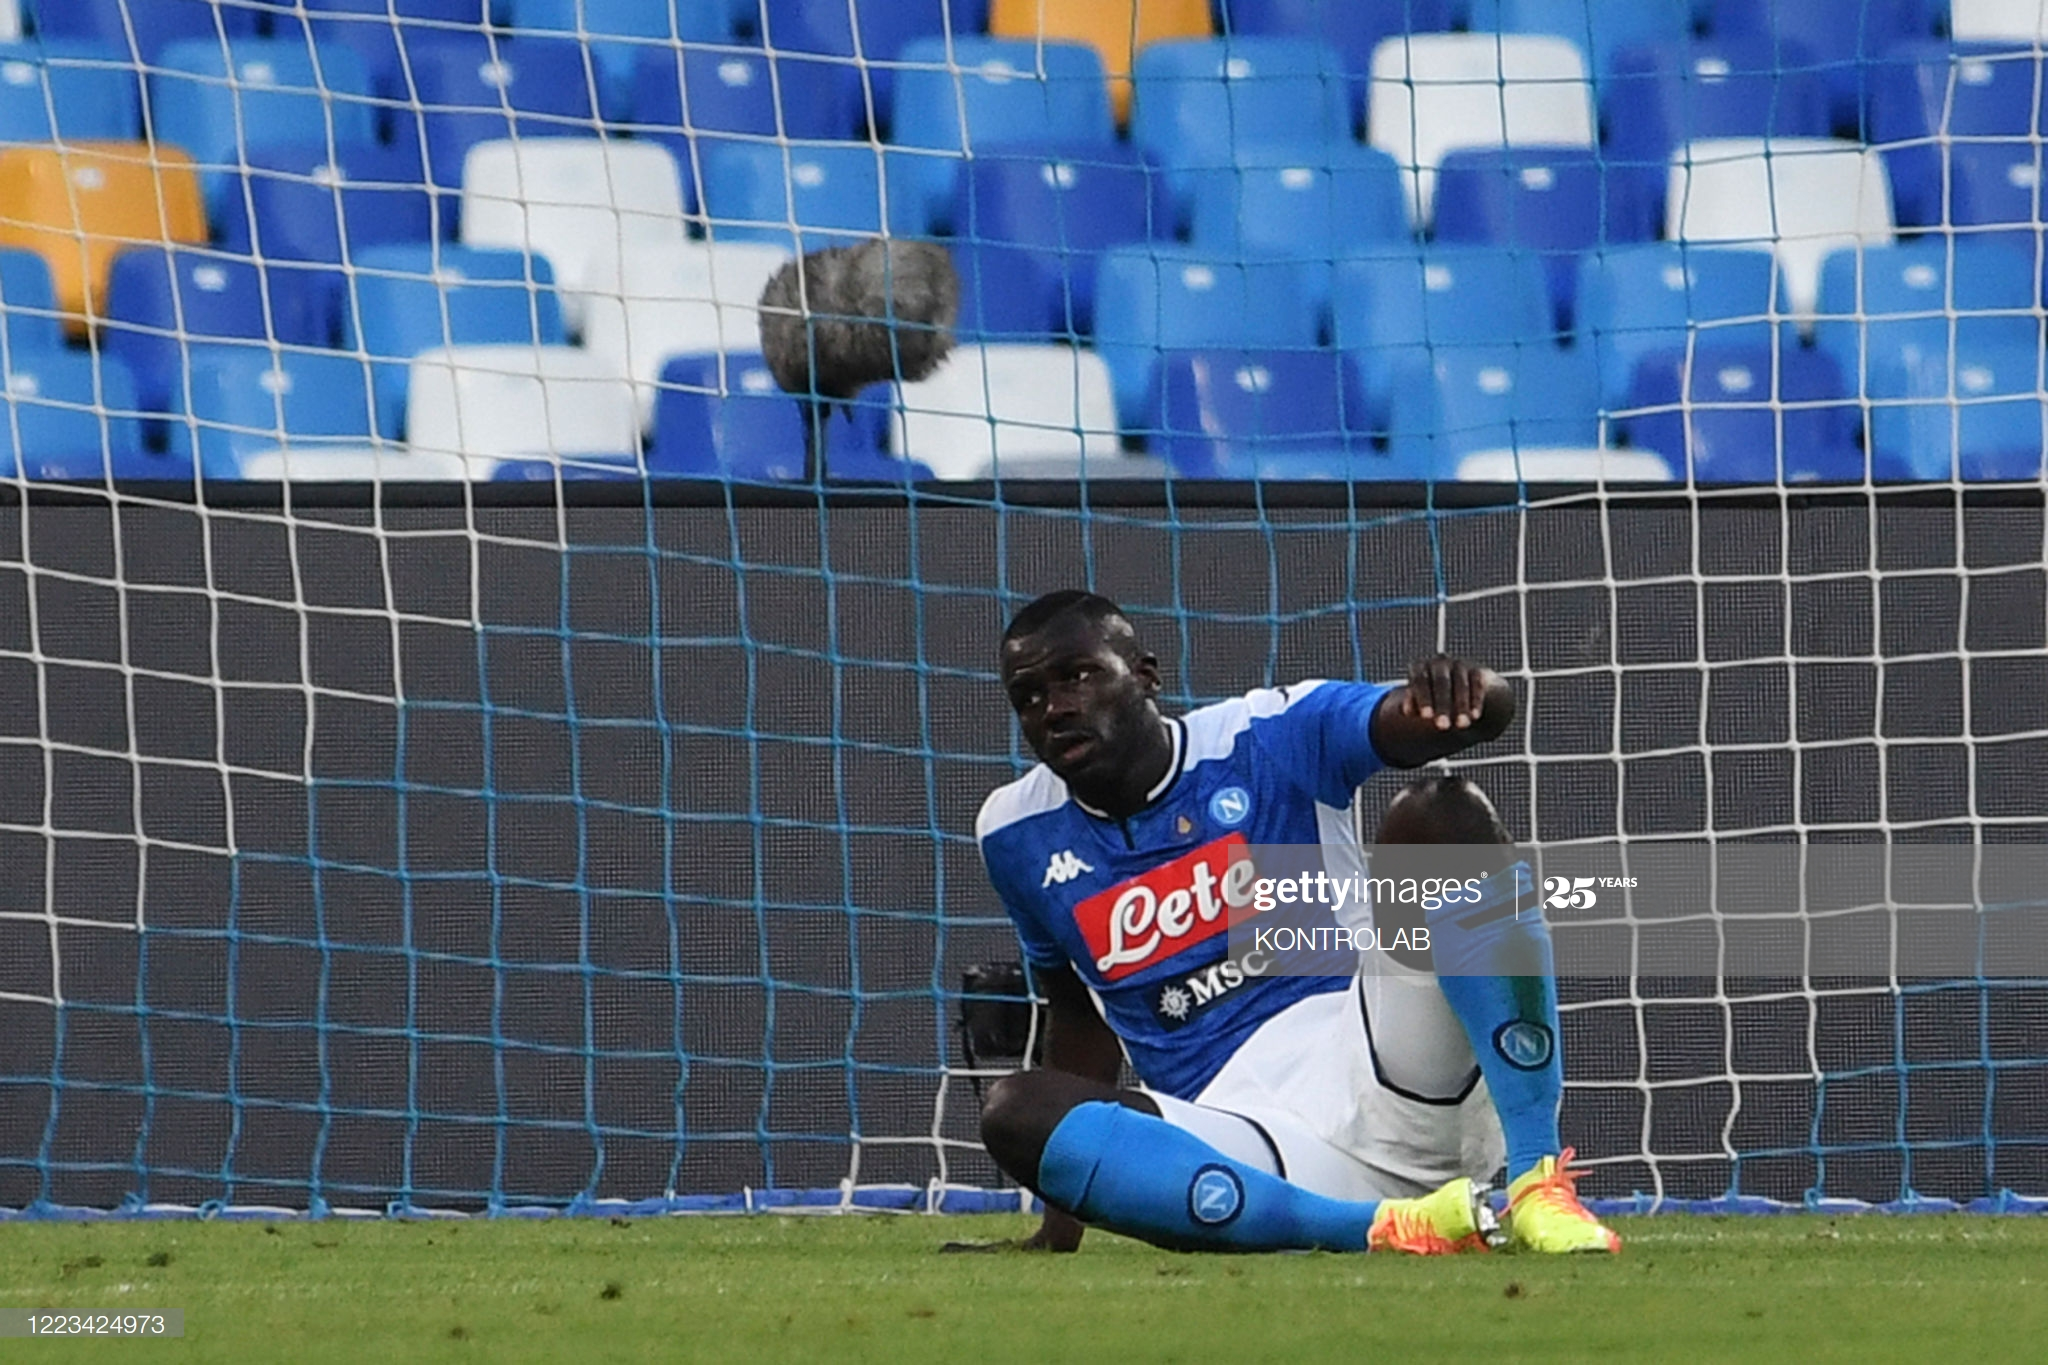 Kolibaly will be available to transfers if we get Osimhen Napoli